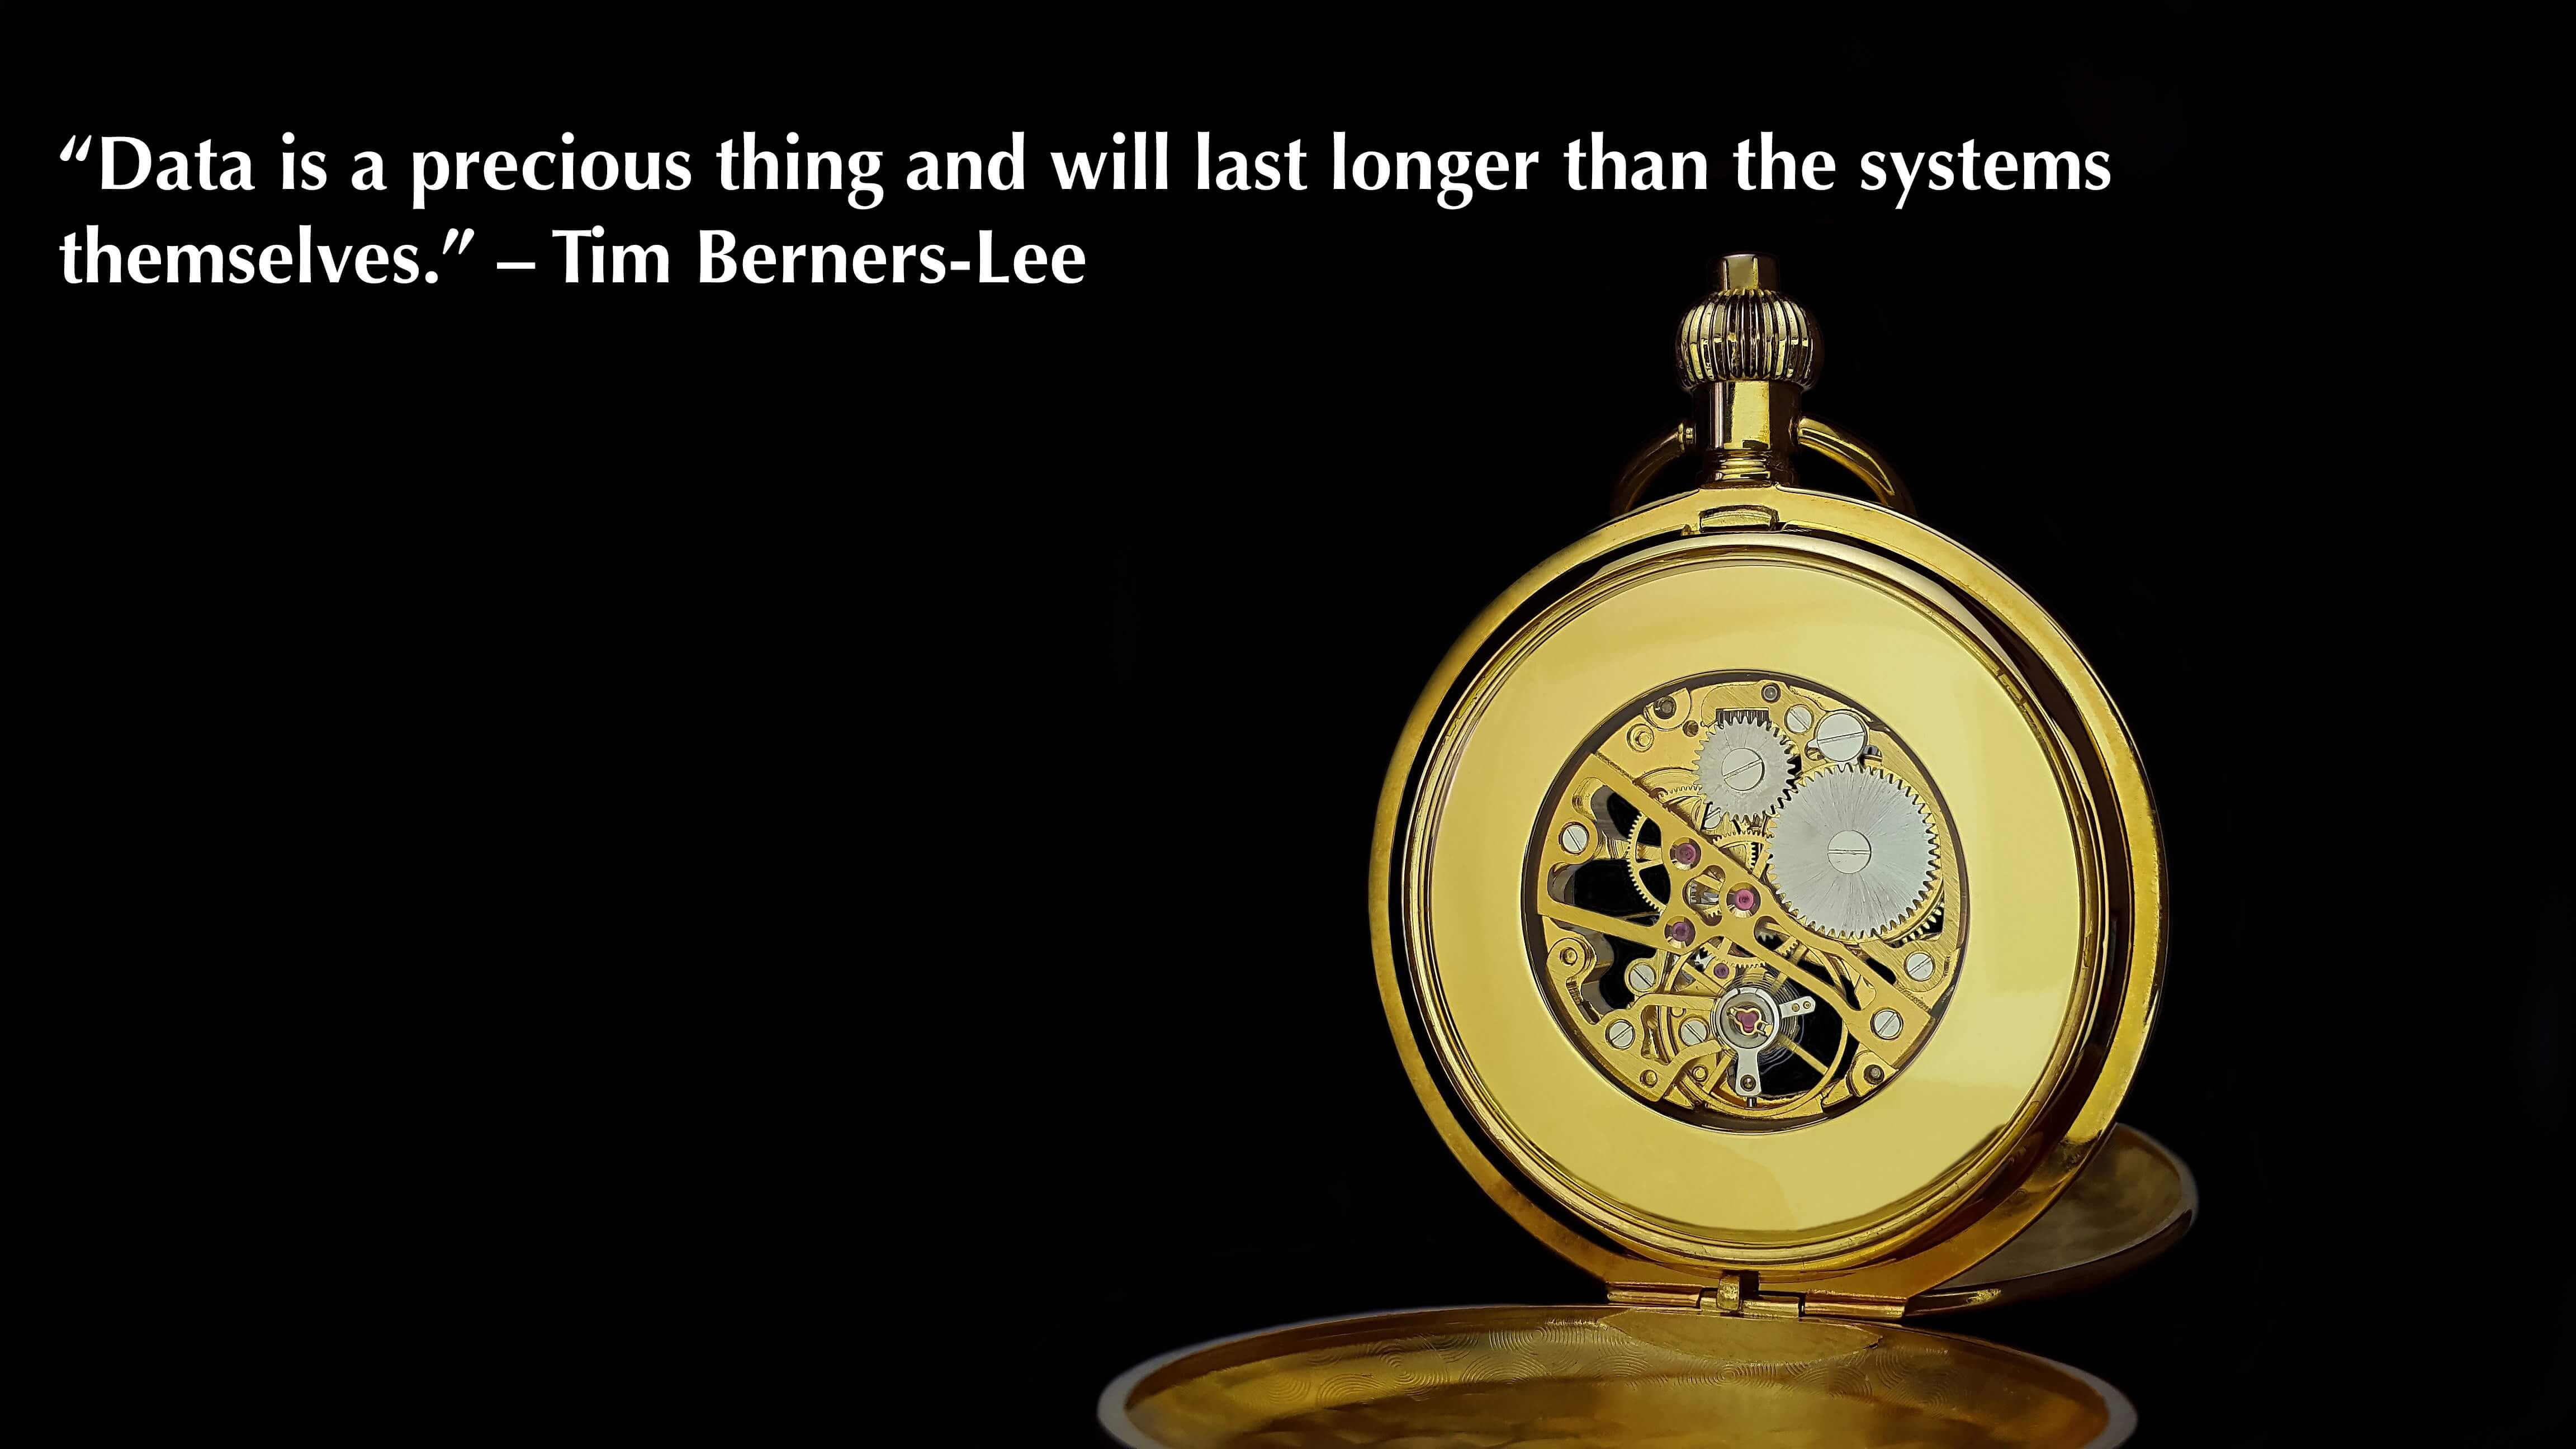 """Data is a precious thing and will last longer than the systems themselves."" – Tim Berners-Lee"